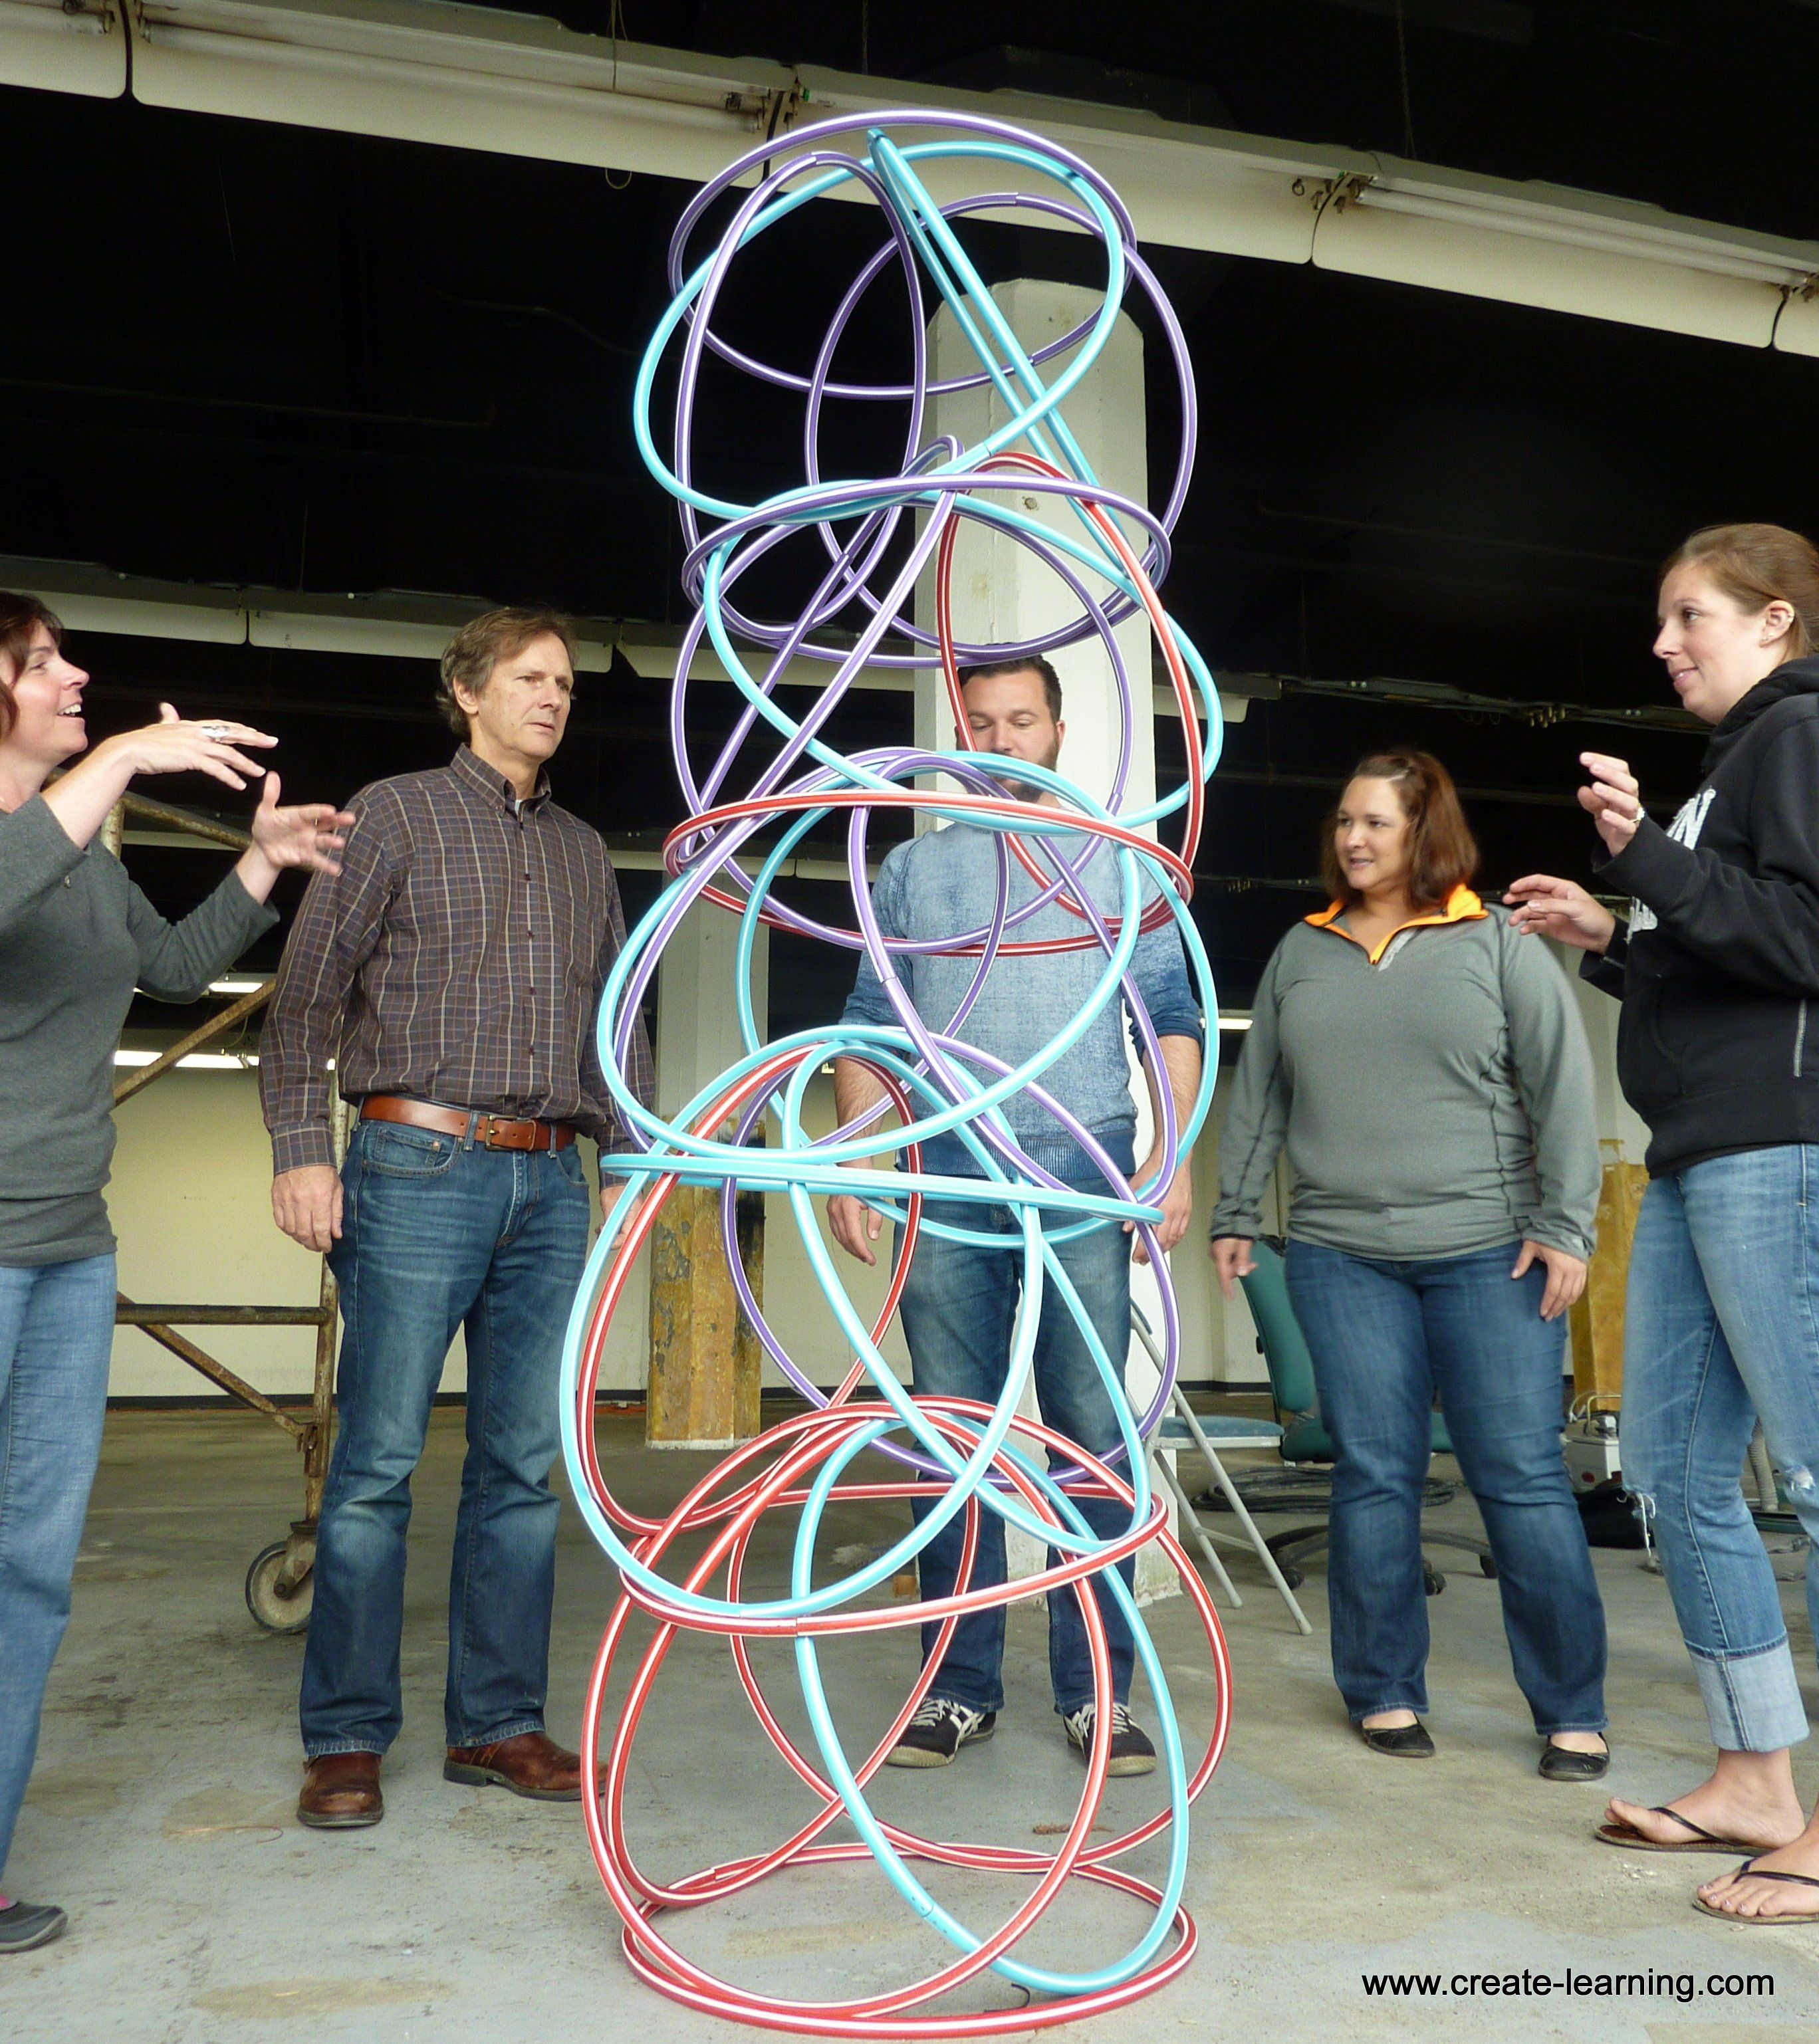 7 Organization Development Leadership Team Building Activities Written About Or Explored In